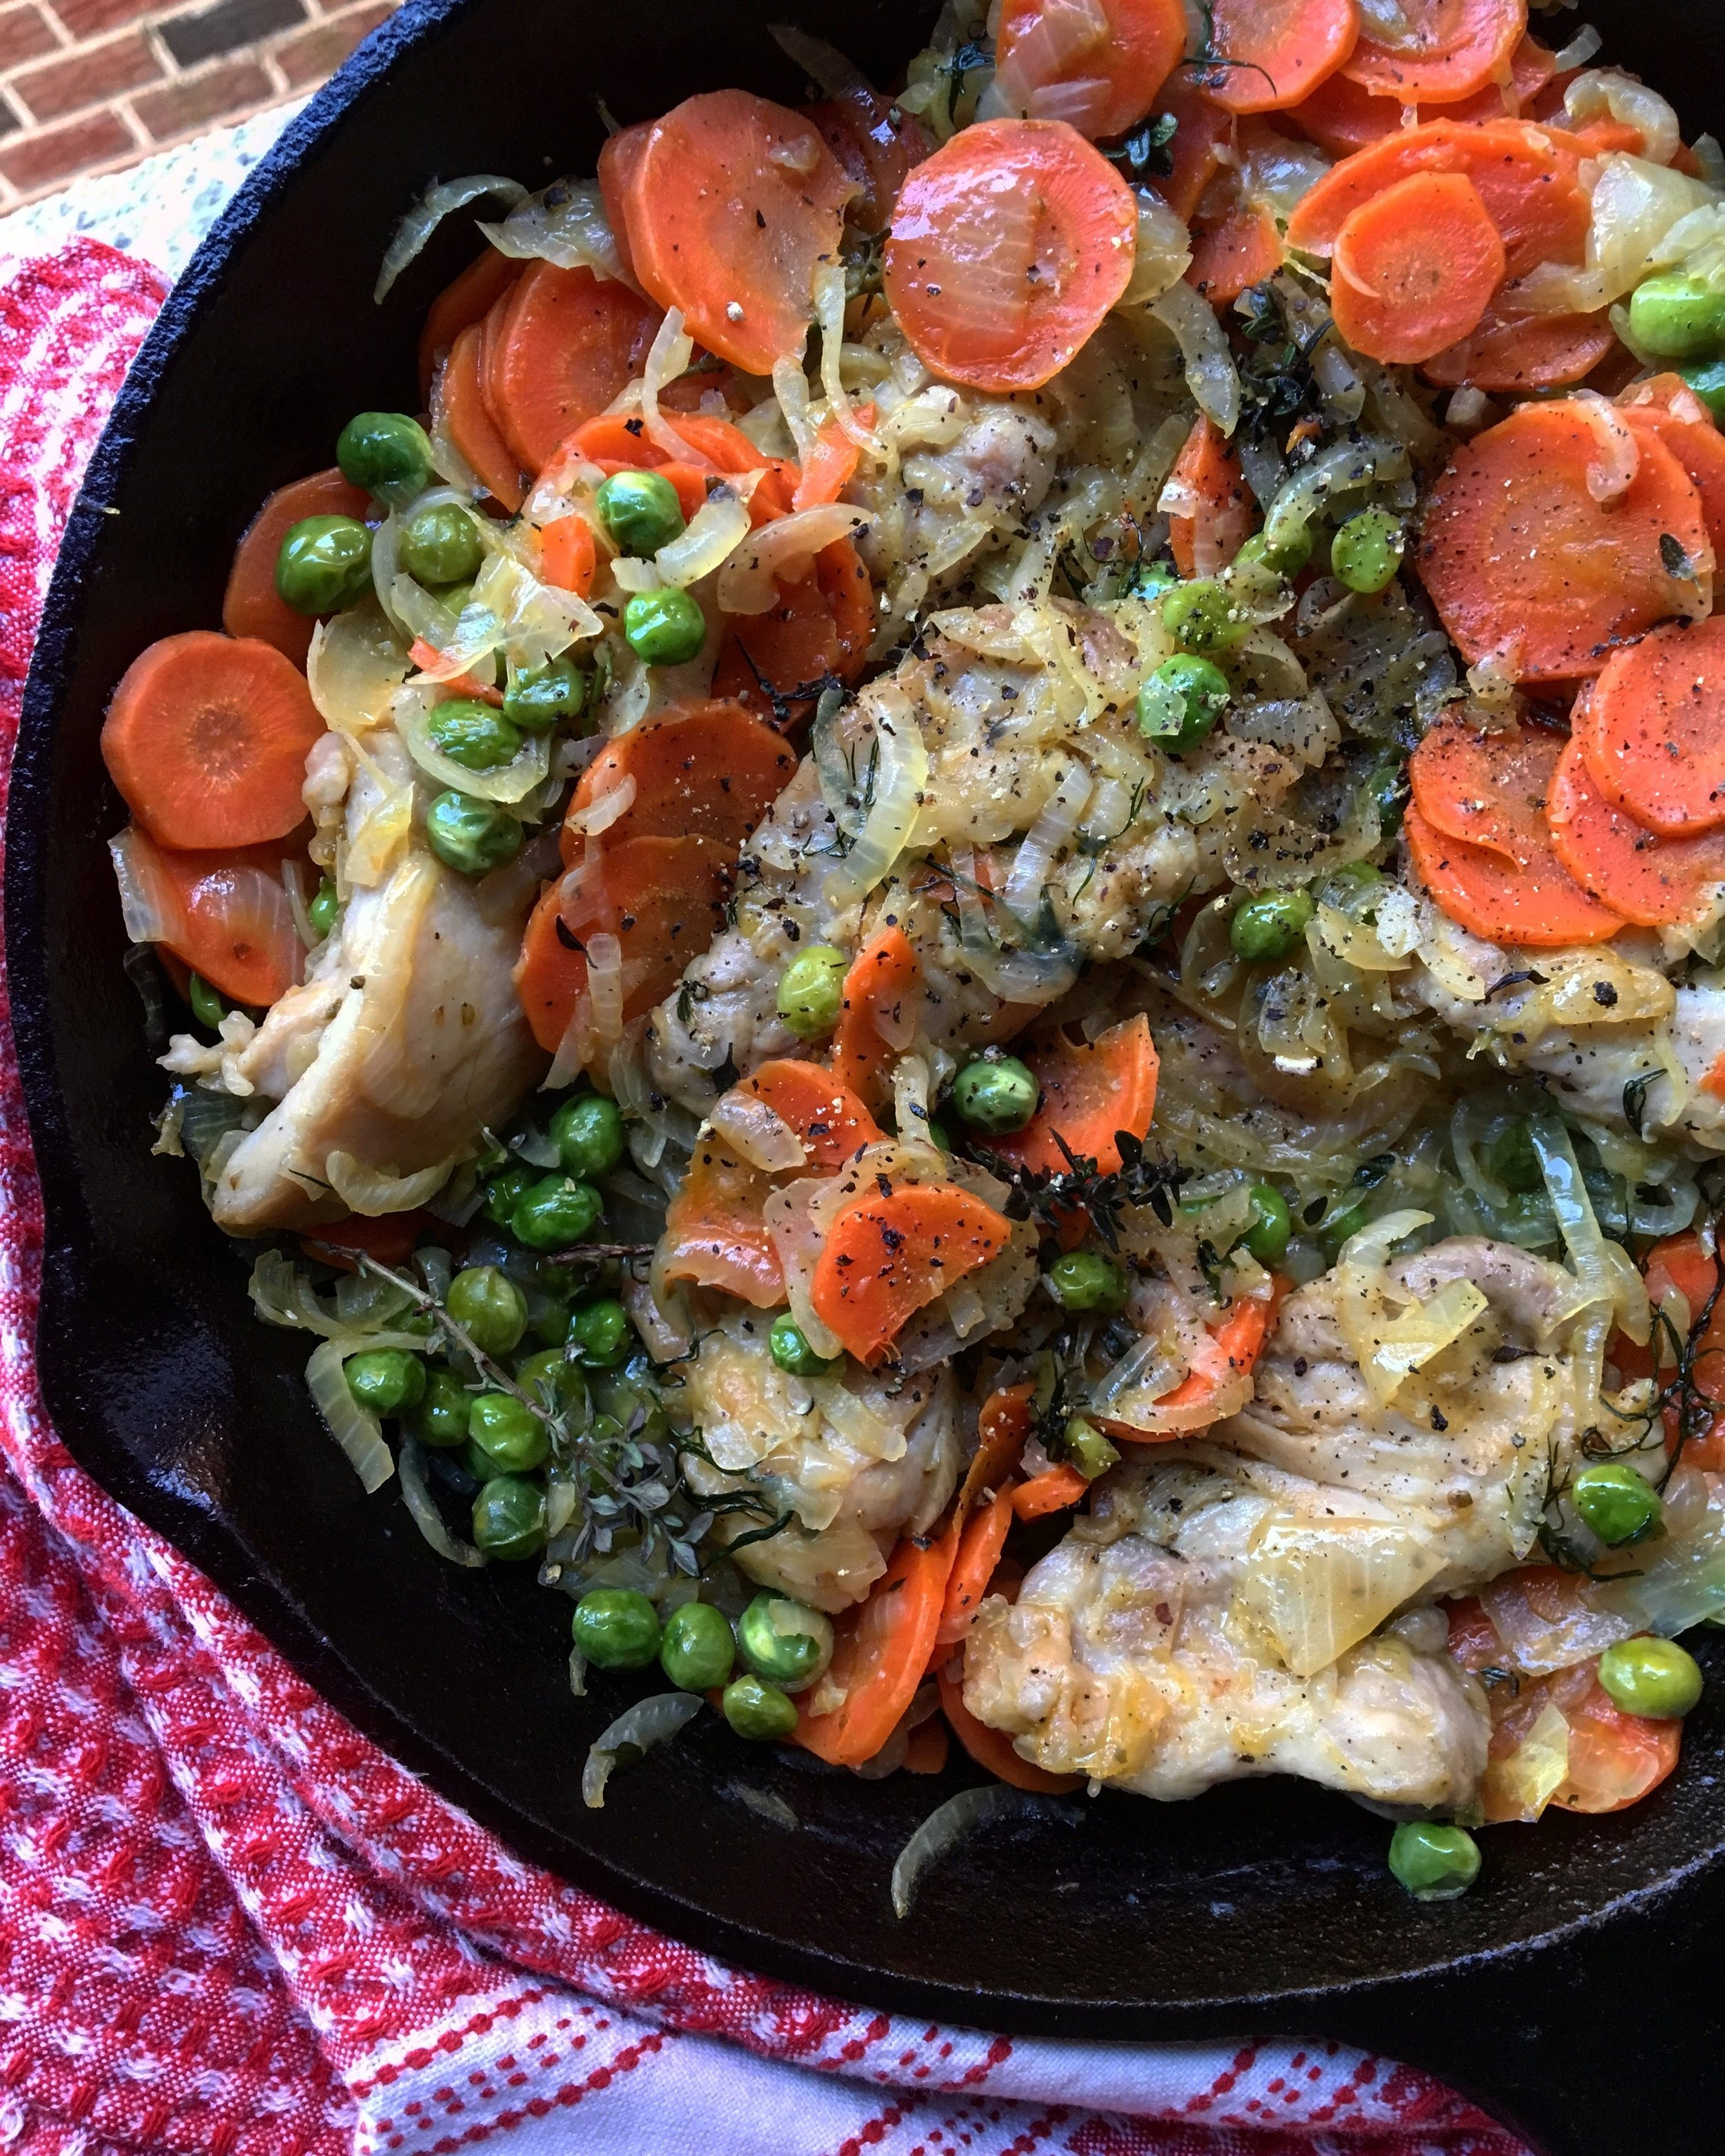 Chicken Thighs / Peas / Carrots / Herbs